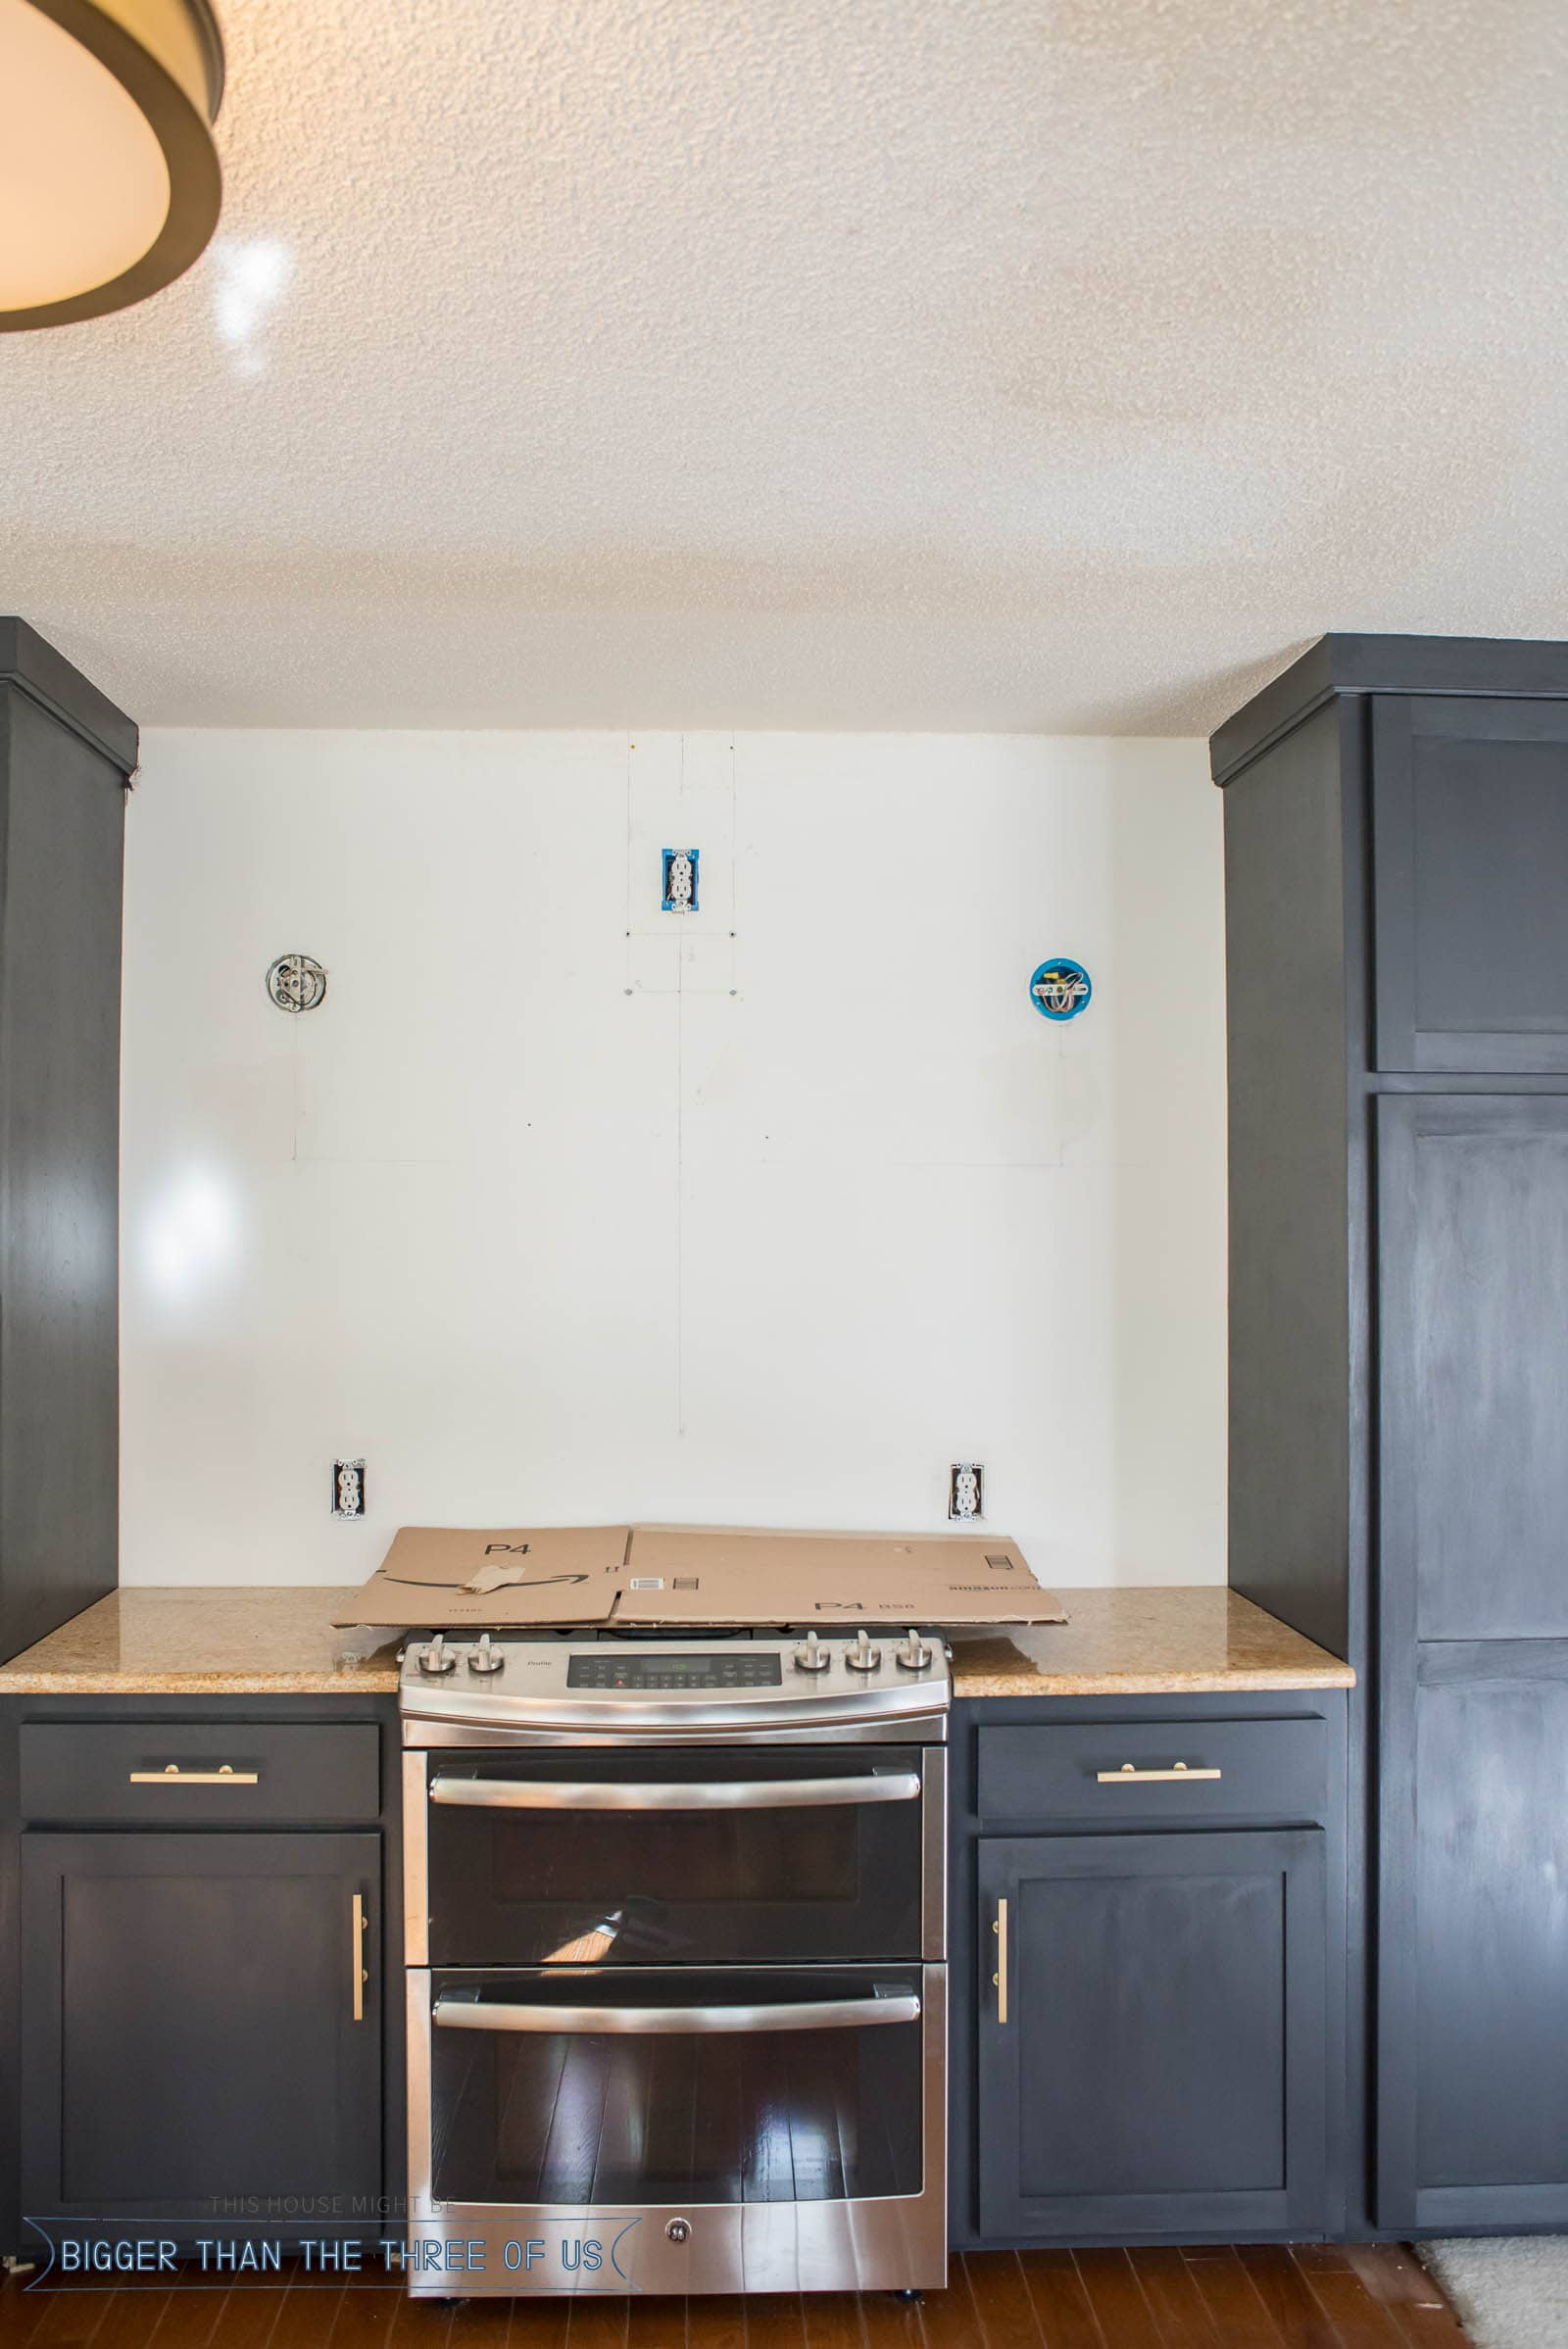 Sconces on each side of oven in modern kitchen.